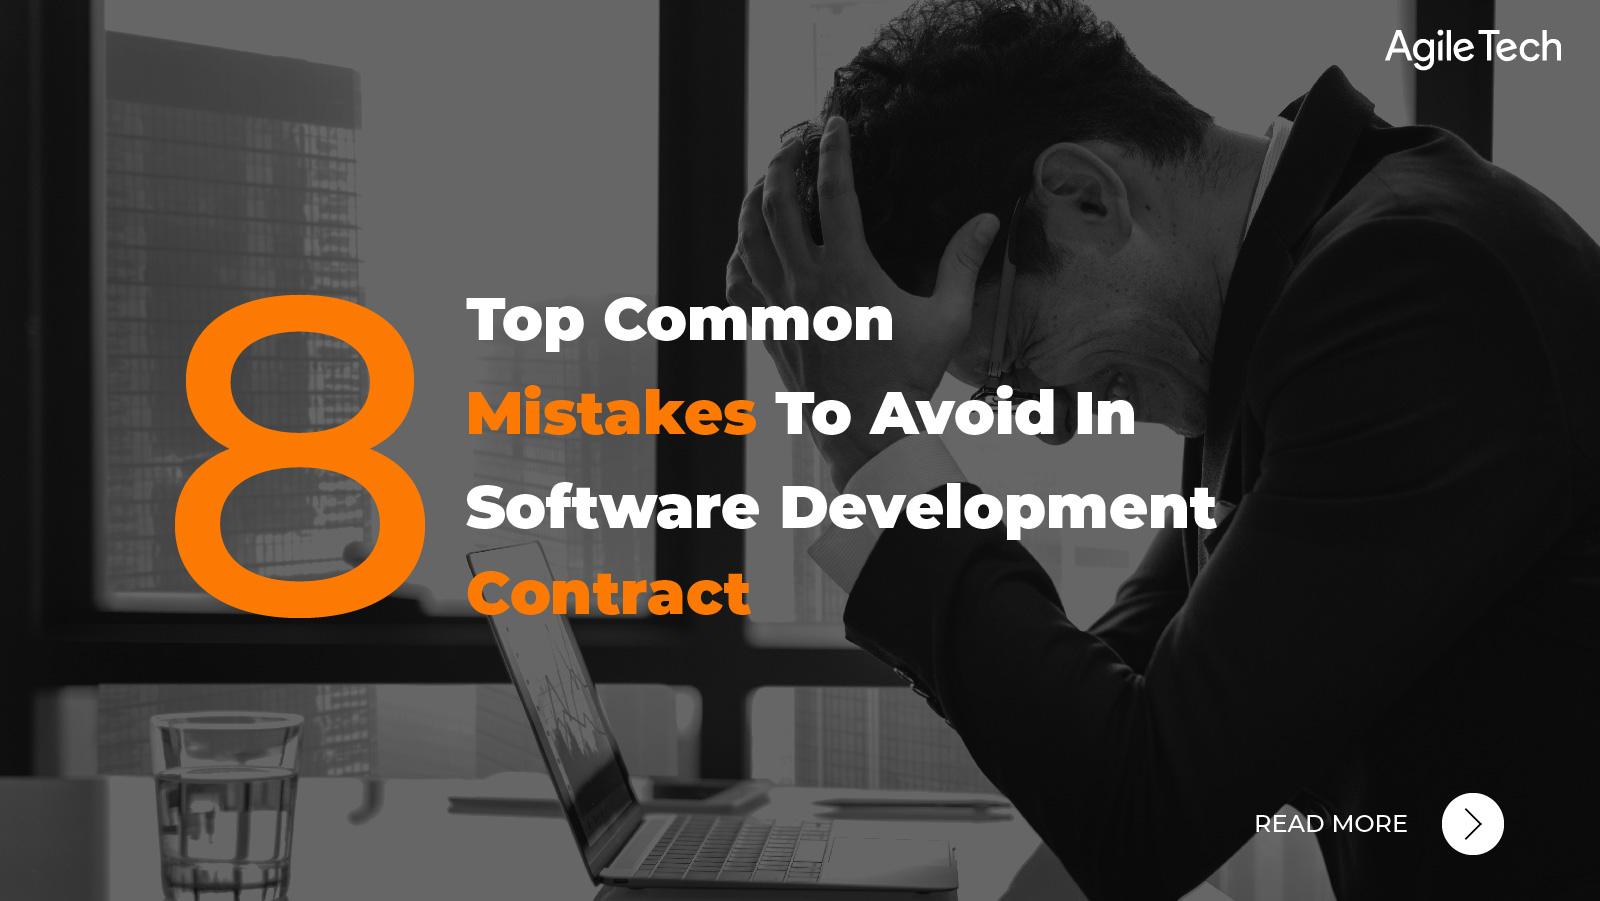 software development contract, custom software development agreement, software development checklist, how to avoid mistakes in software outsourcing contract, agiletech